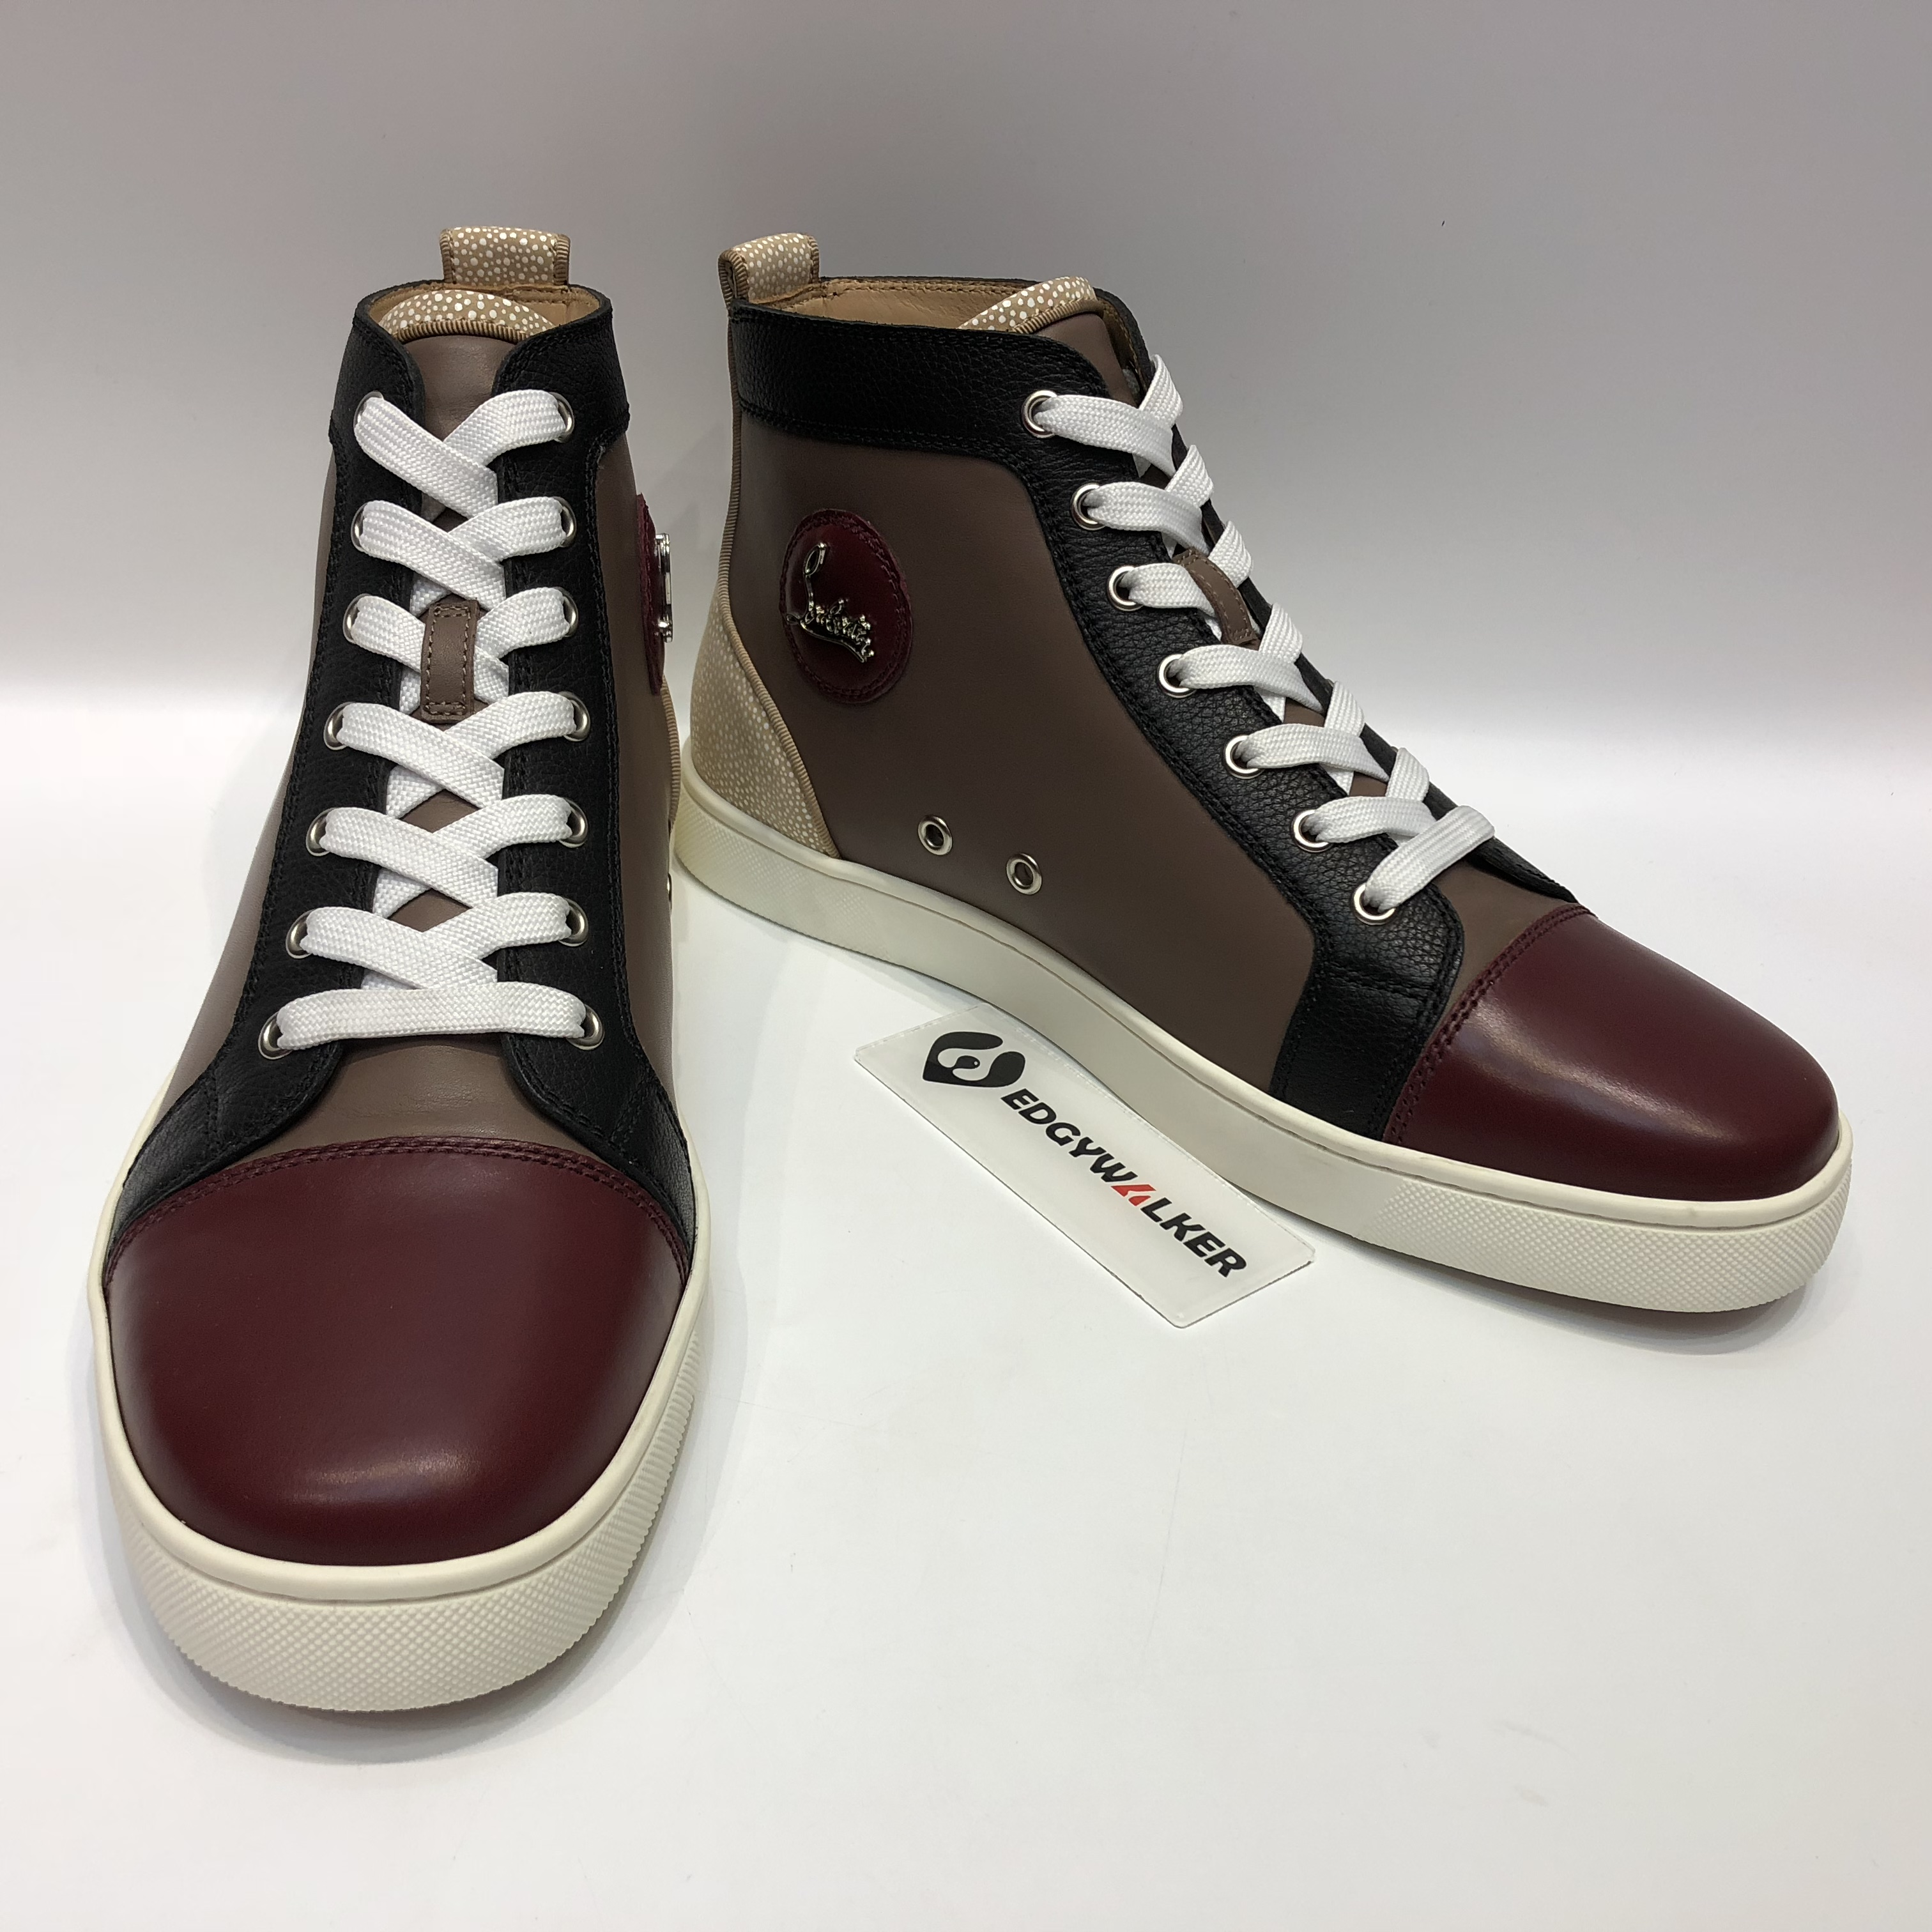 261904f0dfe US  290 - CLSKH20 Louboutin Louis Flat Version Mastic Highs - www ...